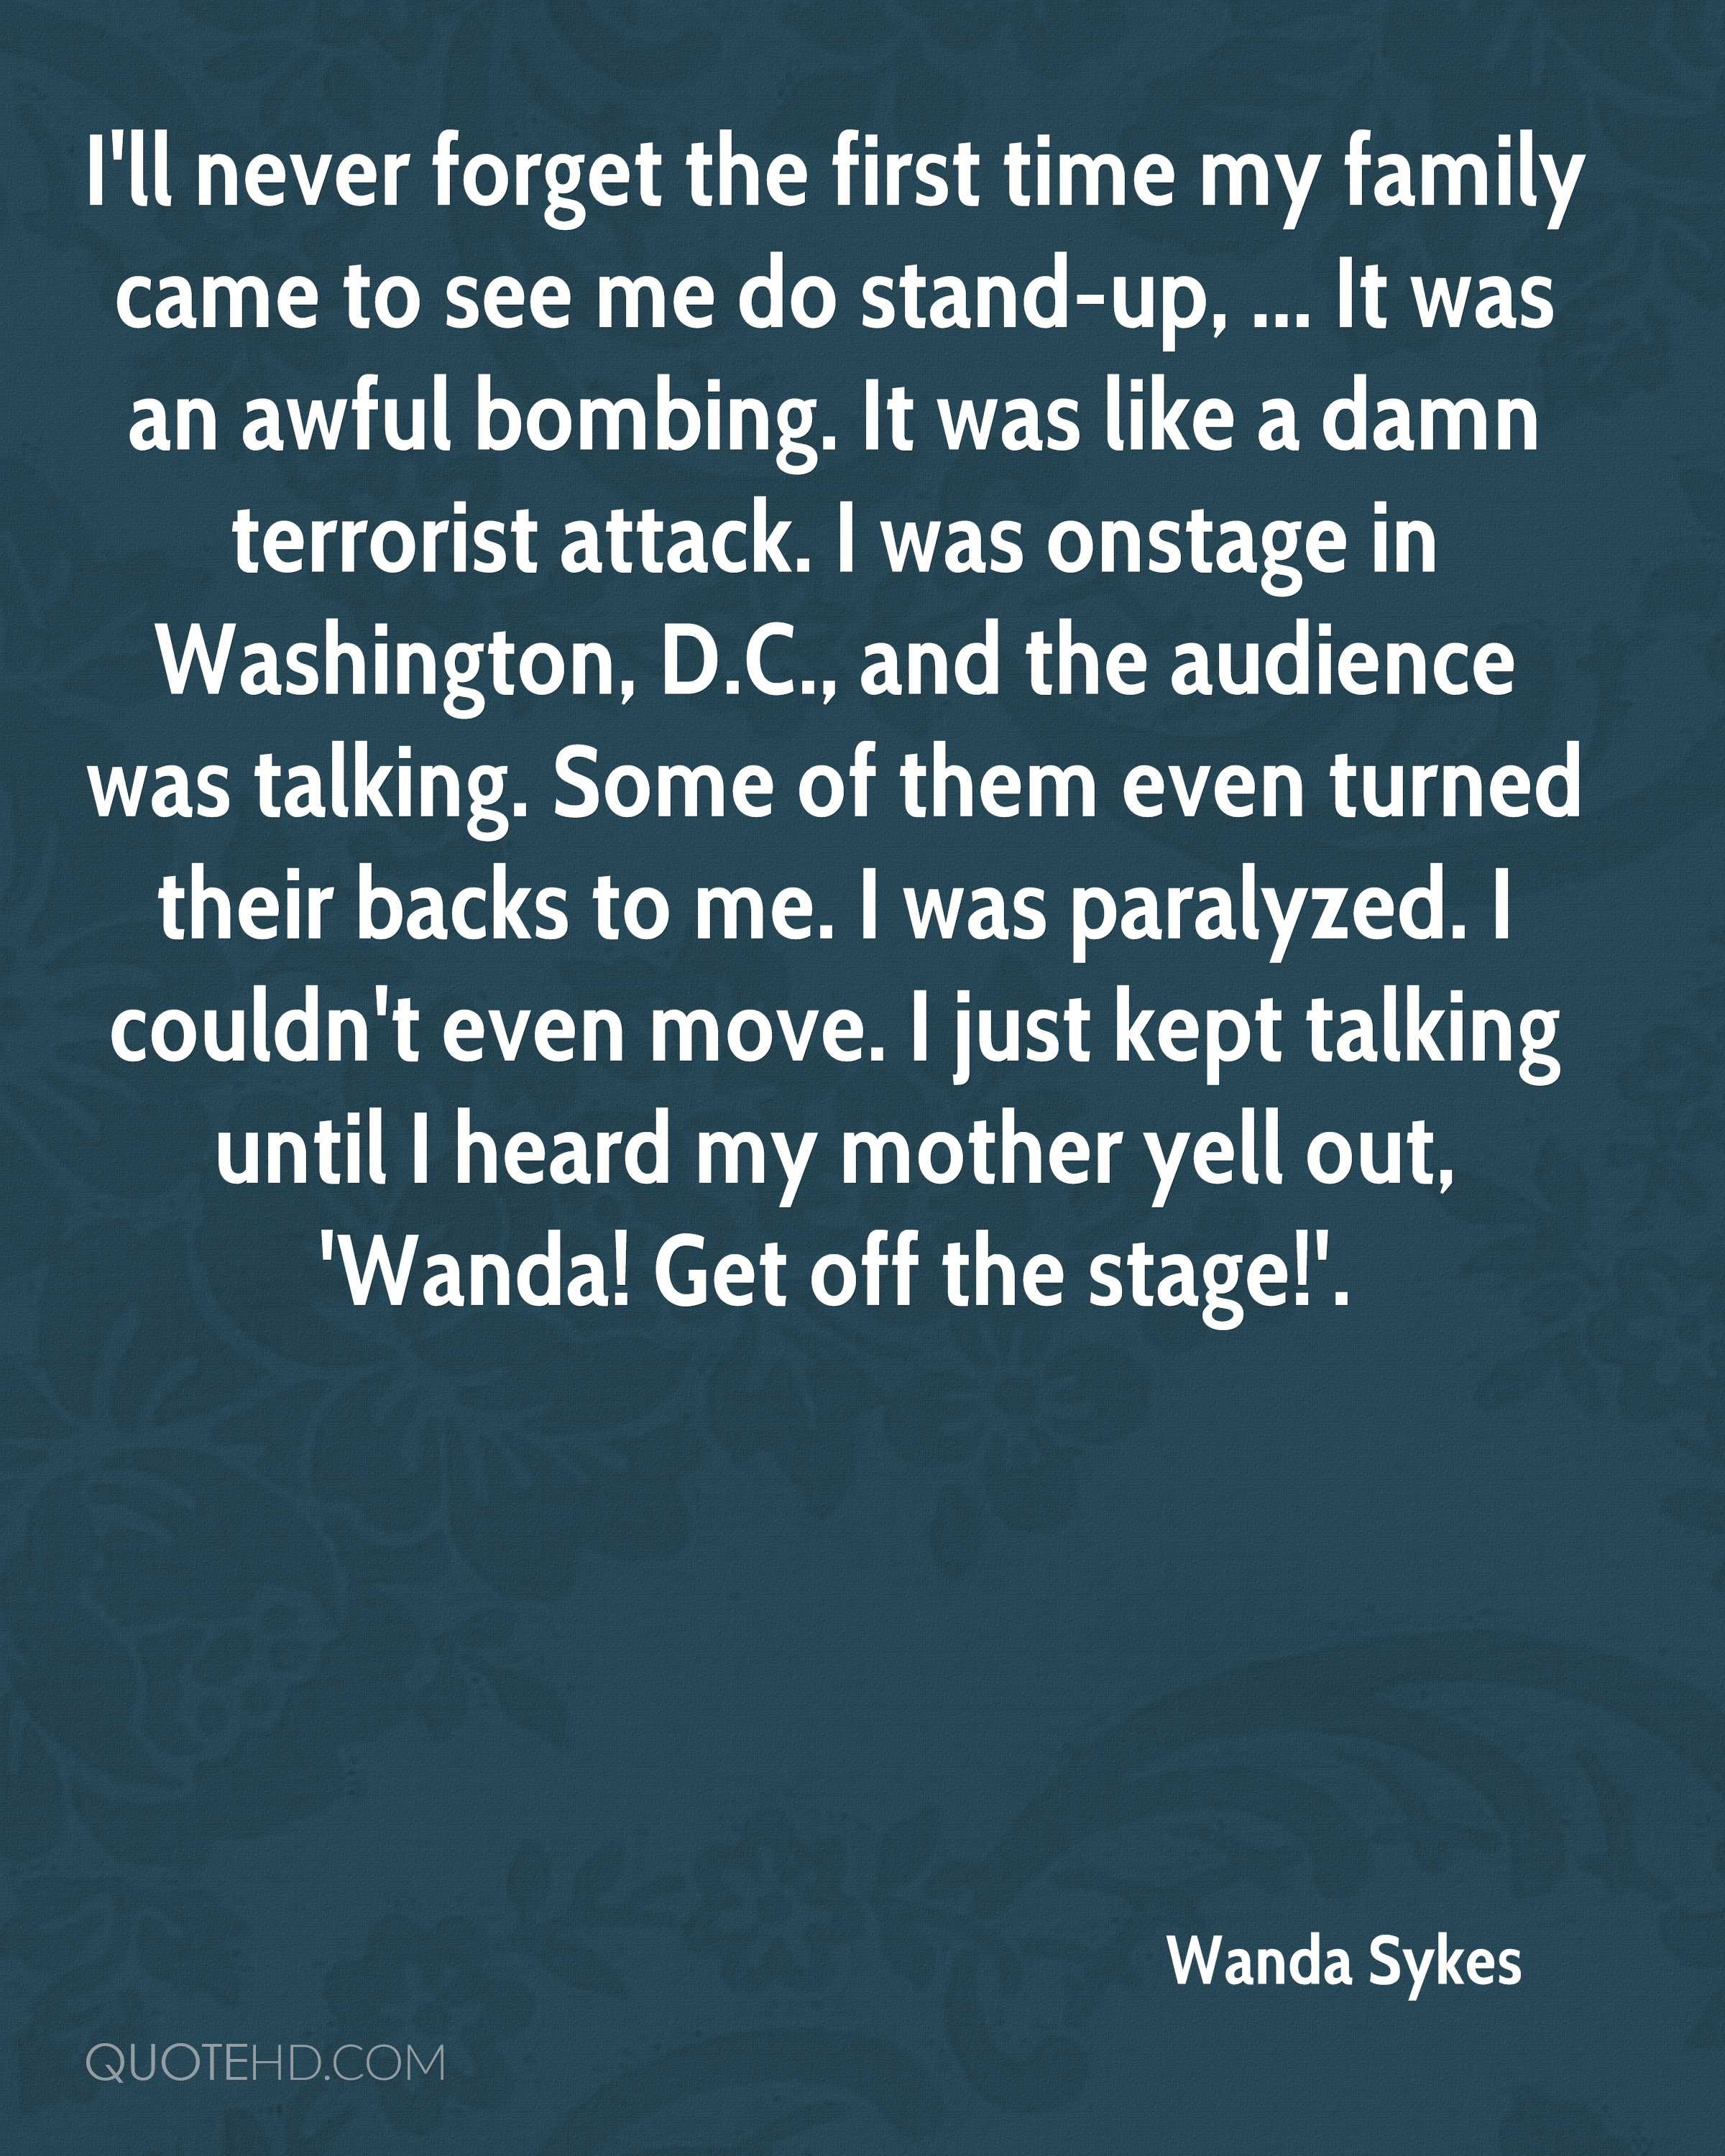 I'll never forget the first time my family came to see me do stand-up, ... It was an awful bombing. It was like a damn terrorist attack. I was onstage in Washington, D.C., and the audience was talking. Some of them even turned their backs to me. I was paralyzed. I couldn't even move. I just kept talking until I heard my mother yell out, 'Wanda! Get off the stage!'.